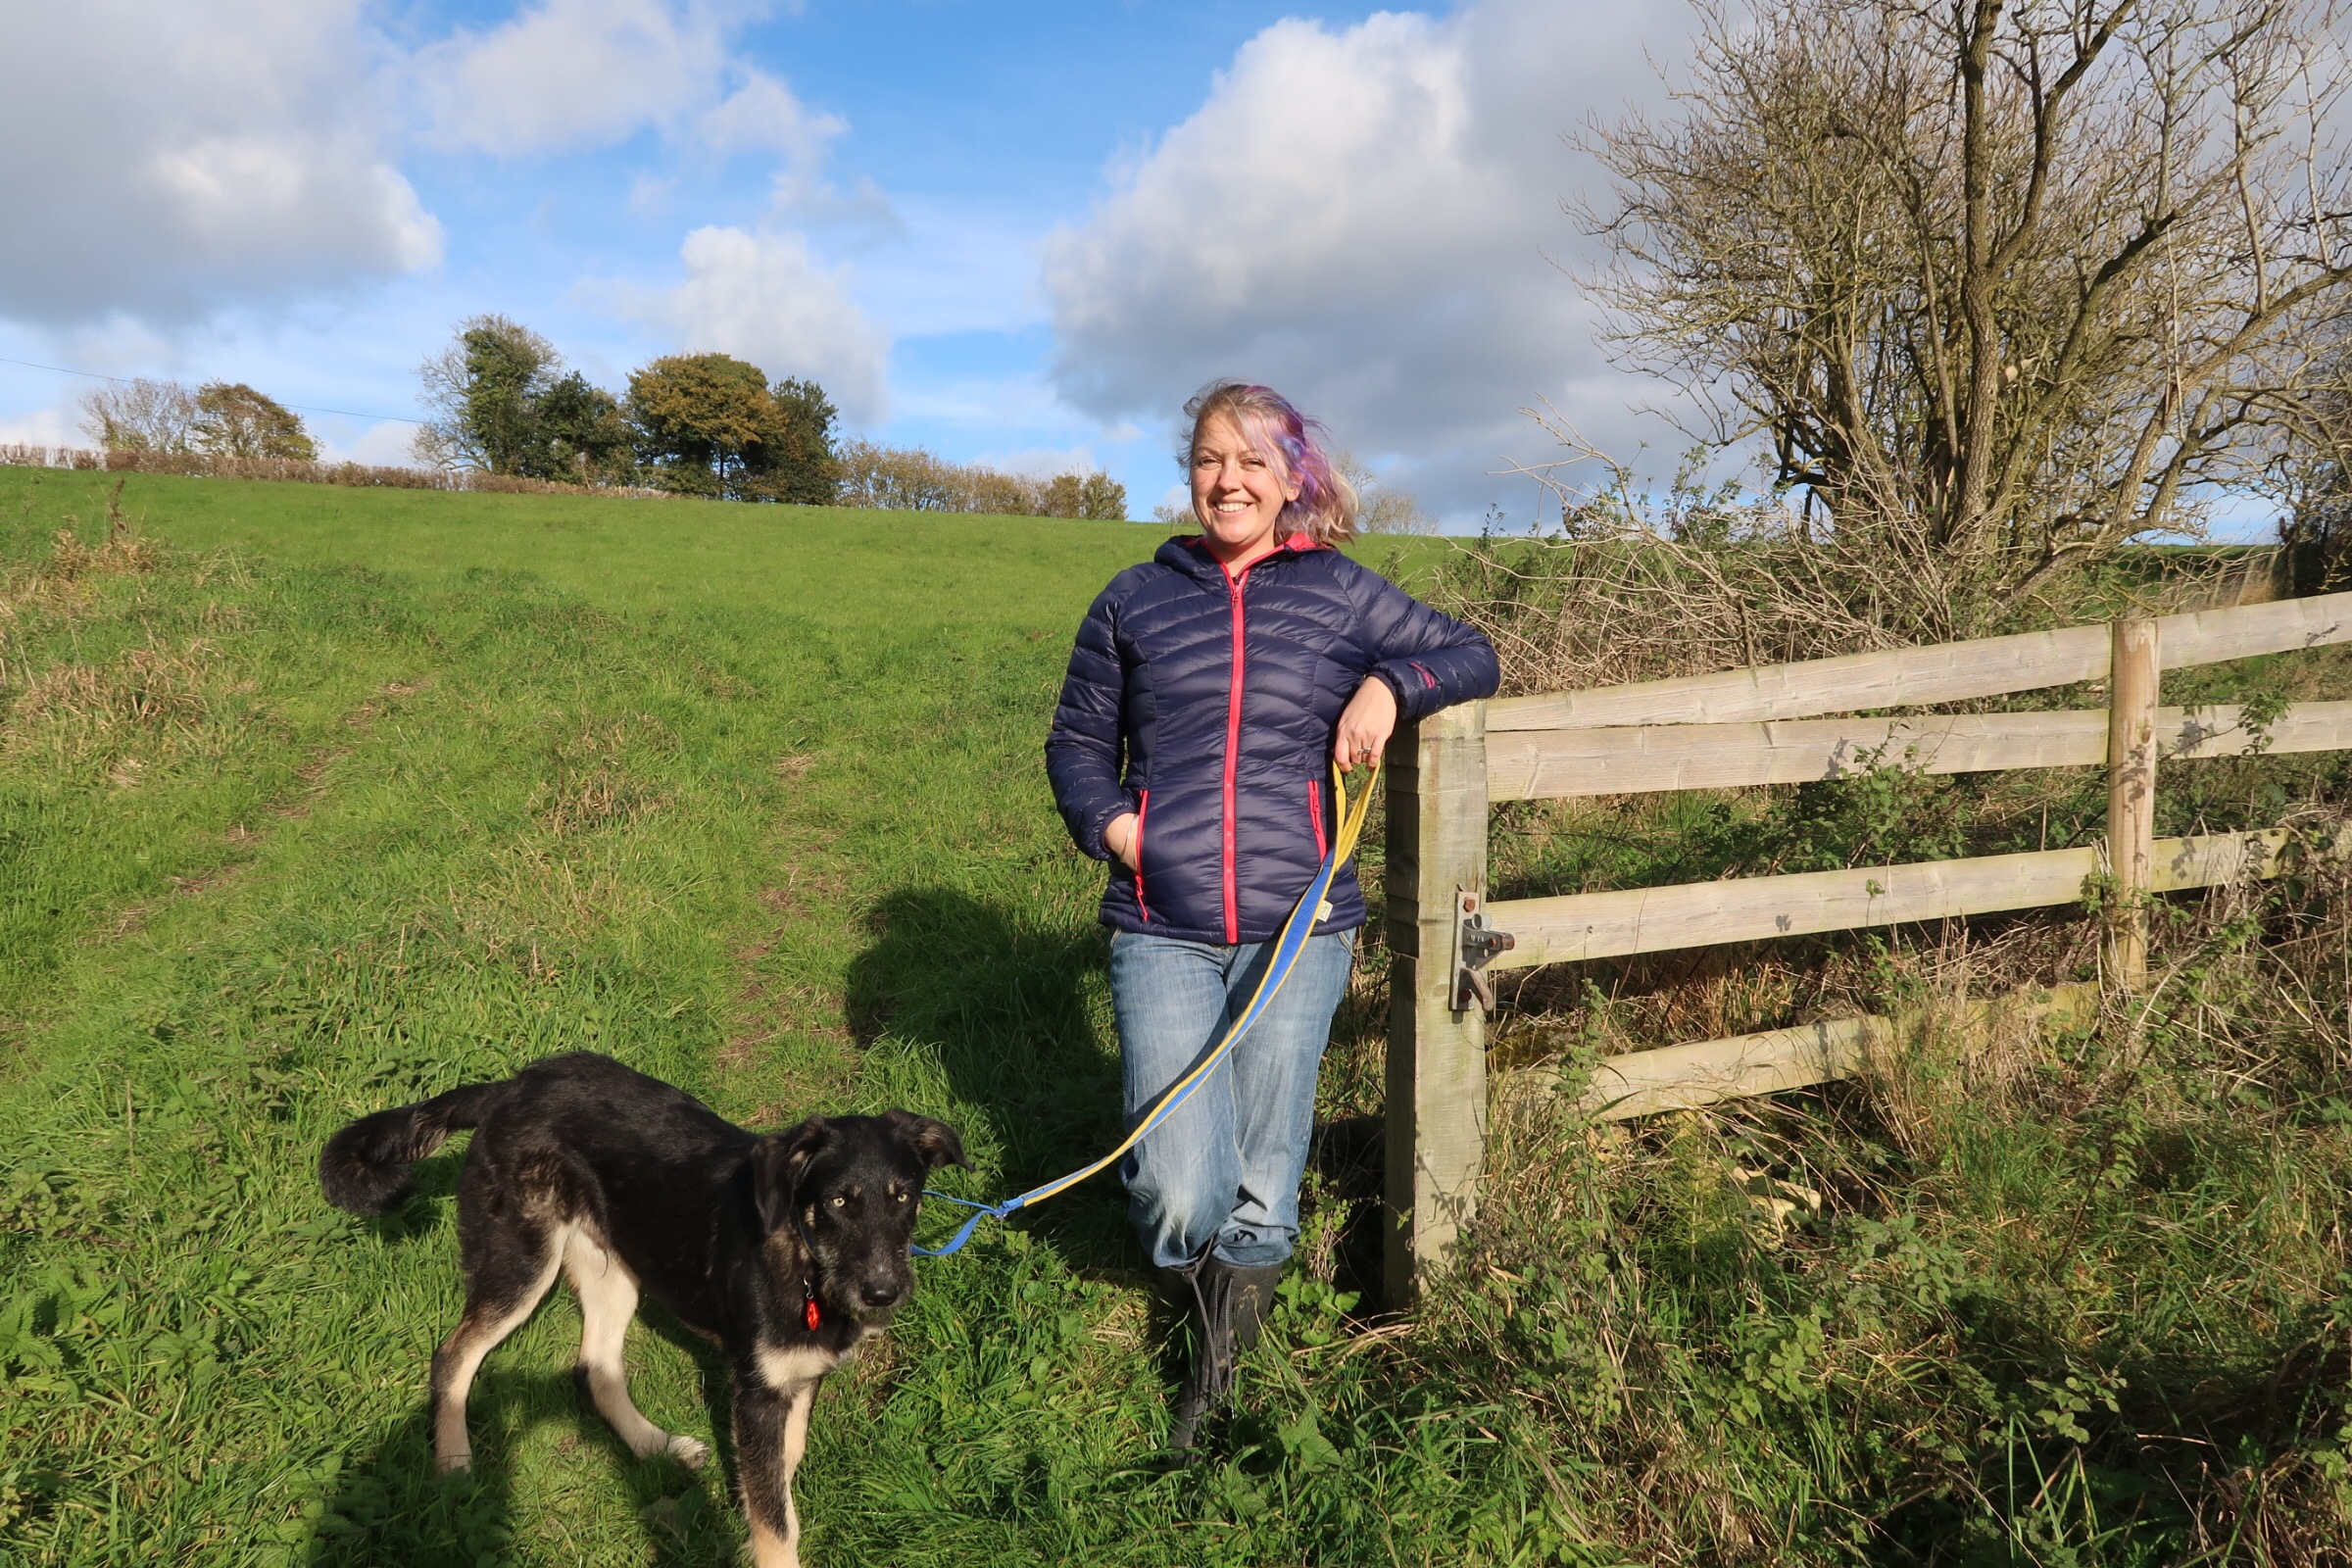 Me in a blue puffa jacket with pink trim from Millets leaning on a gate and holding our dog Barney on the lead.